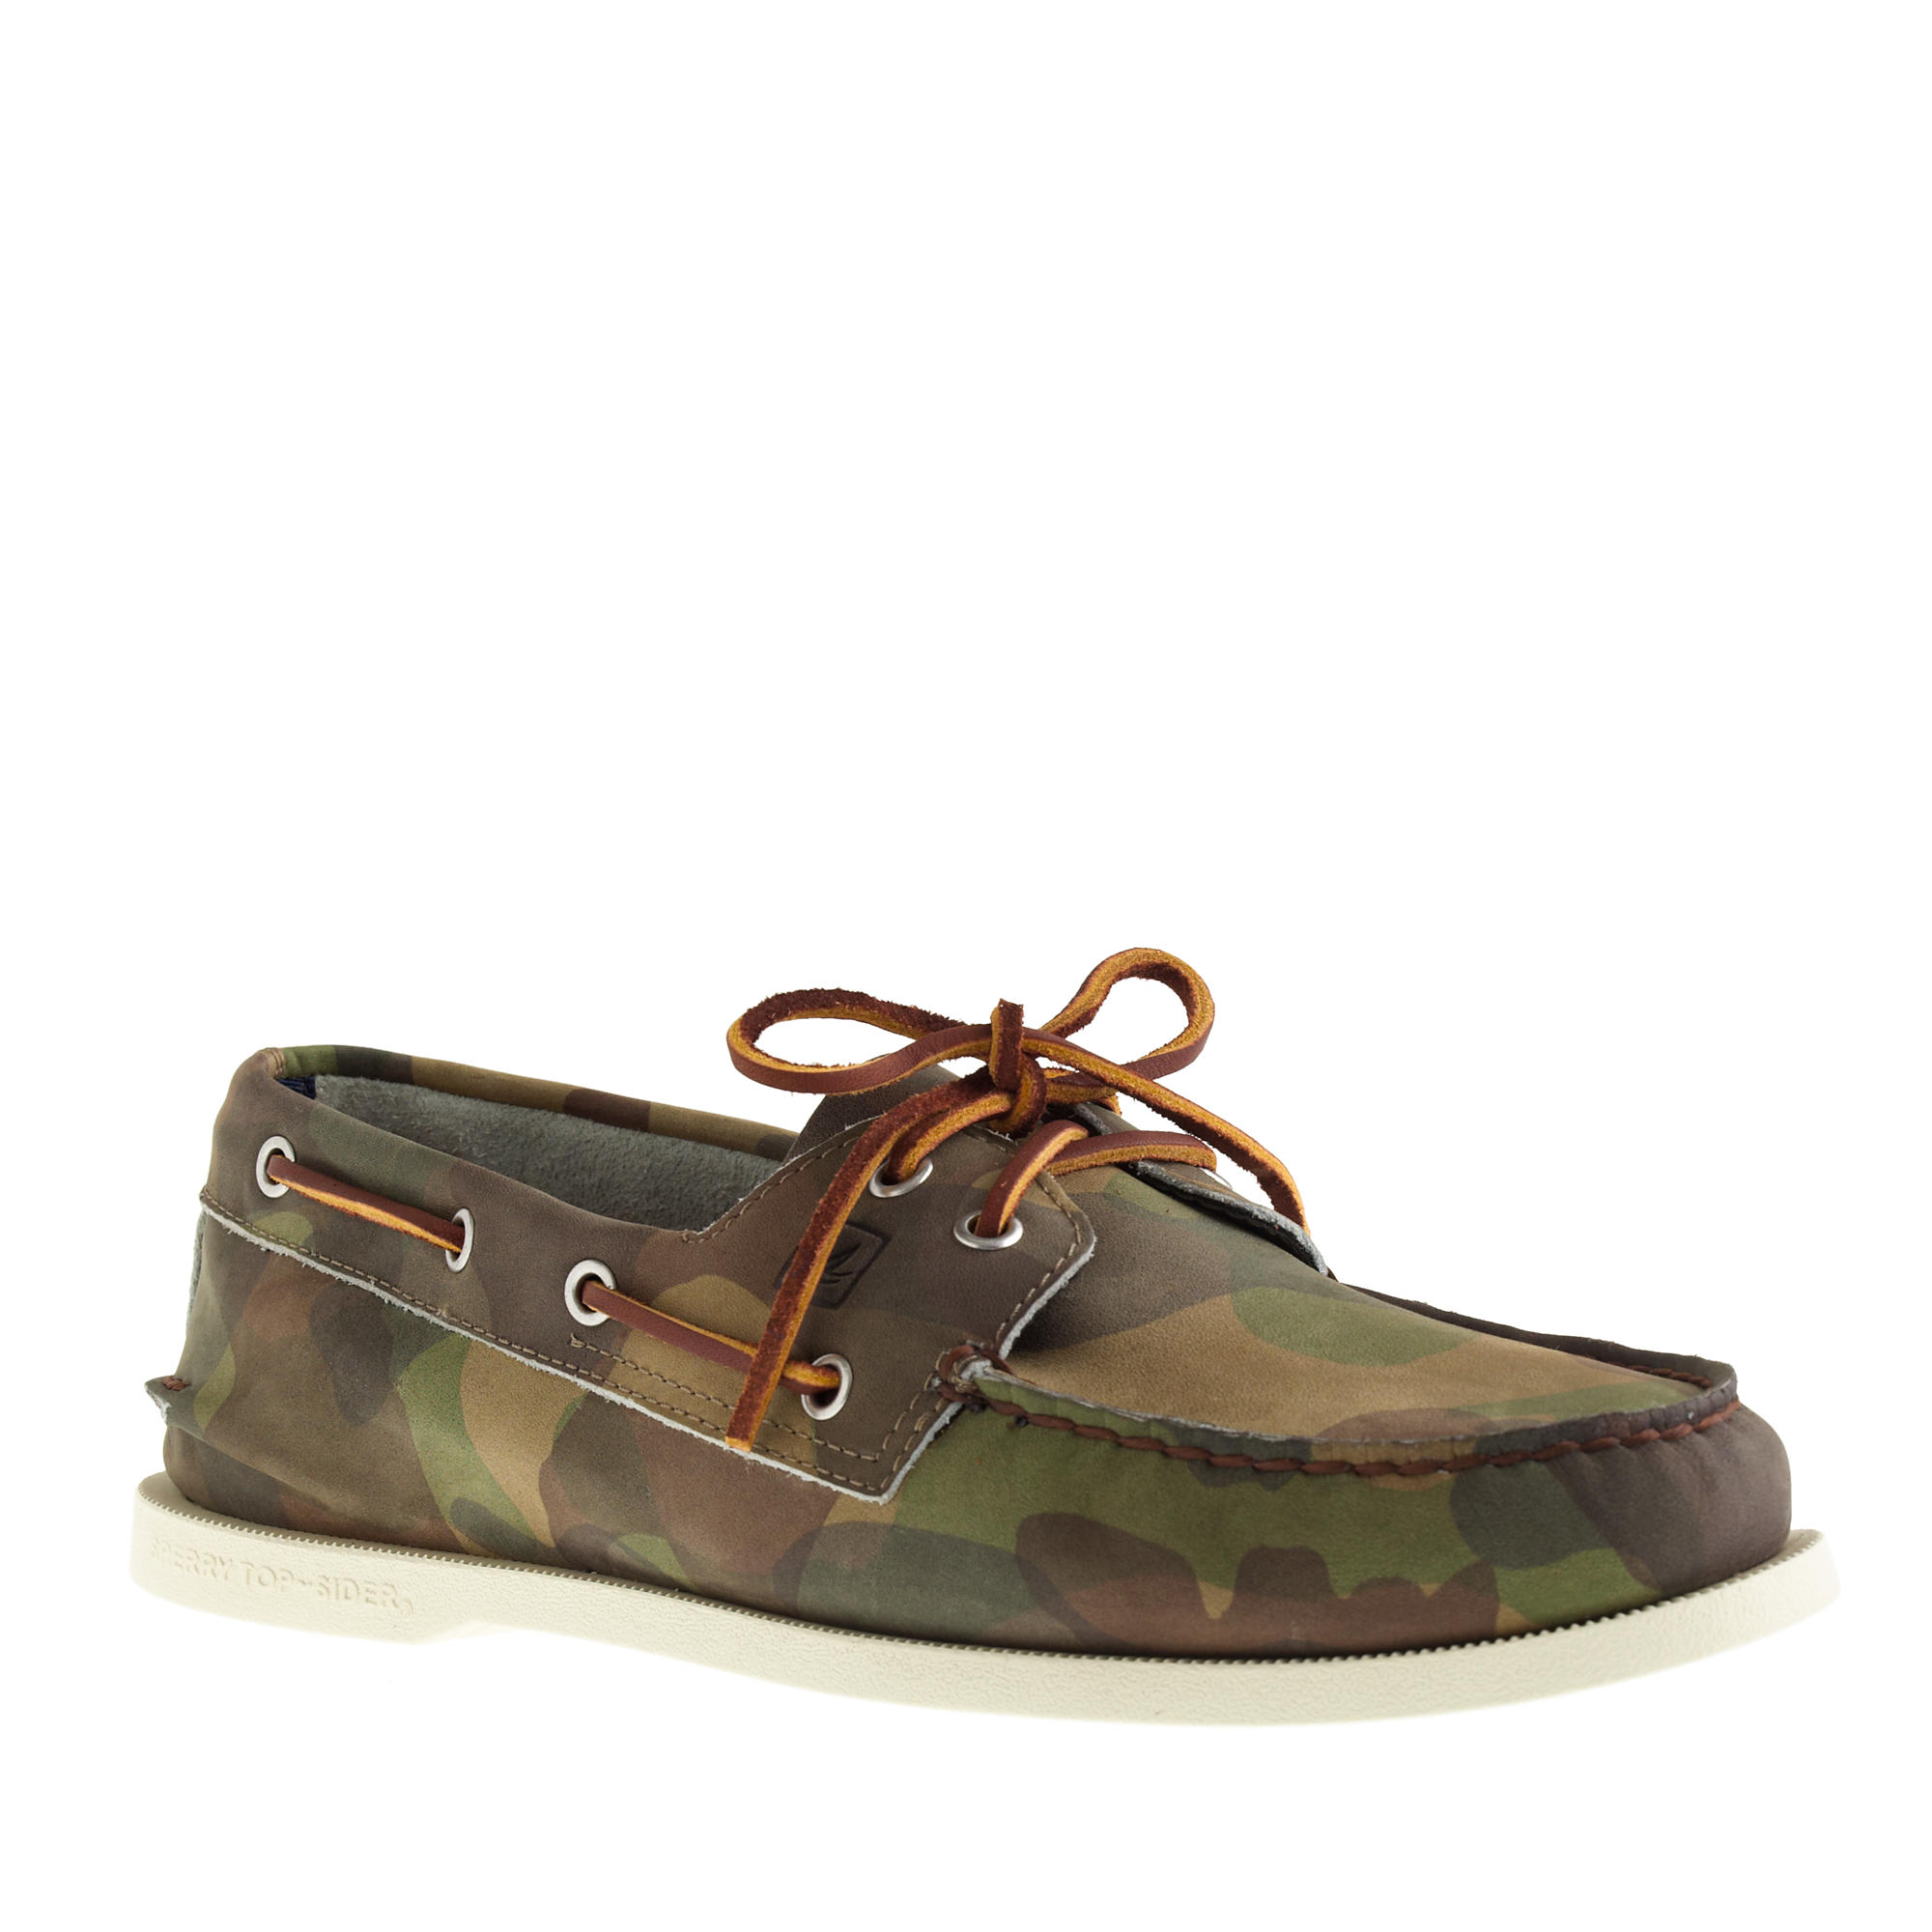 Past Sales for Sperry